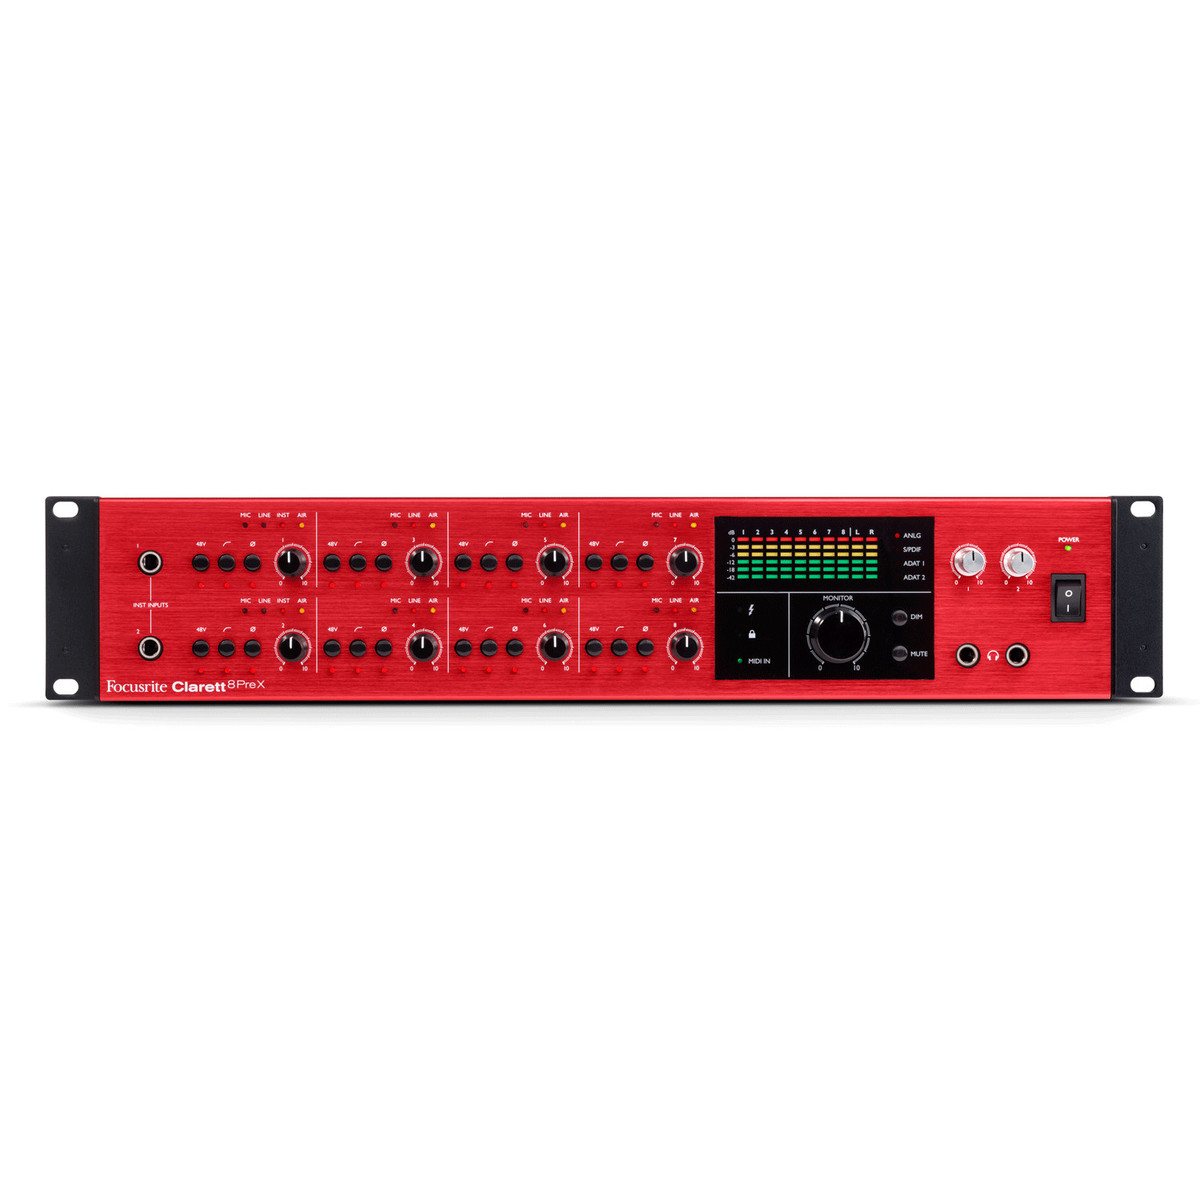 Focusrite Clarett 4 Pre Thunderbolt Desktop 4 Mic Input With Isa Modelled Pre  s Audio Interface further Podcasting Basics Part 1 Voice Recording Gear in addition 9WB moreover Recording Pro Audio Home Recording Studio moreover 16C7. on thunderbolt audio interface focusrite